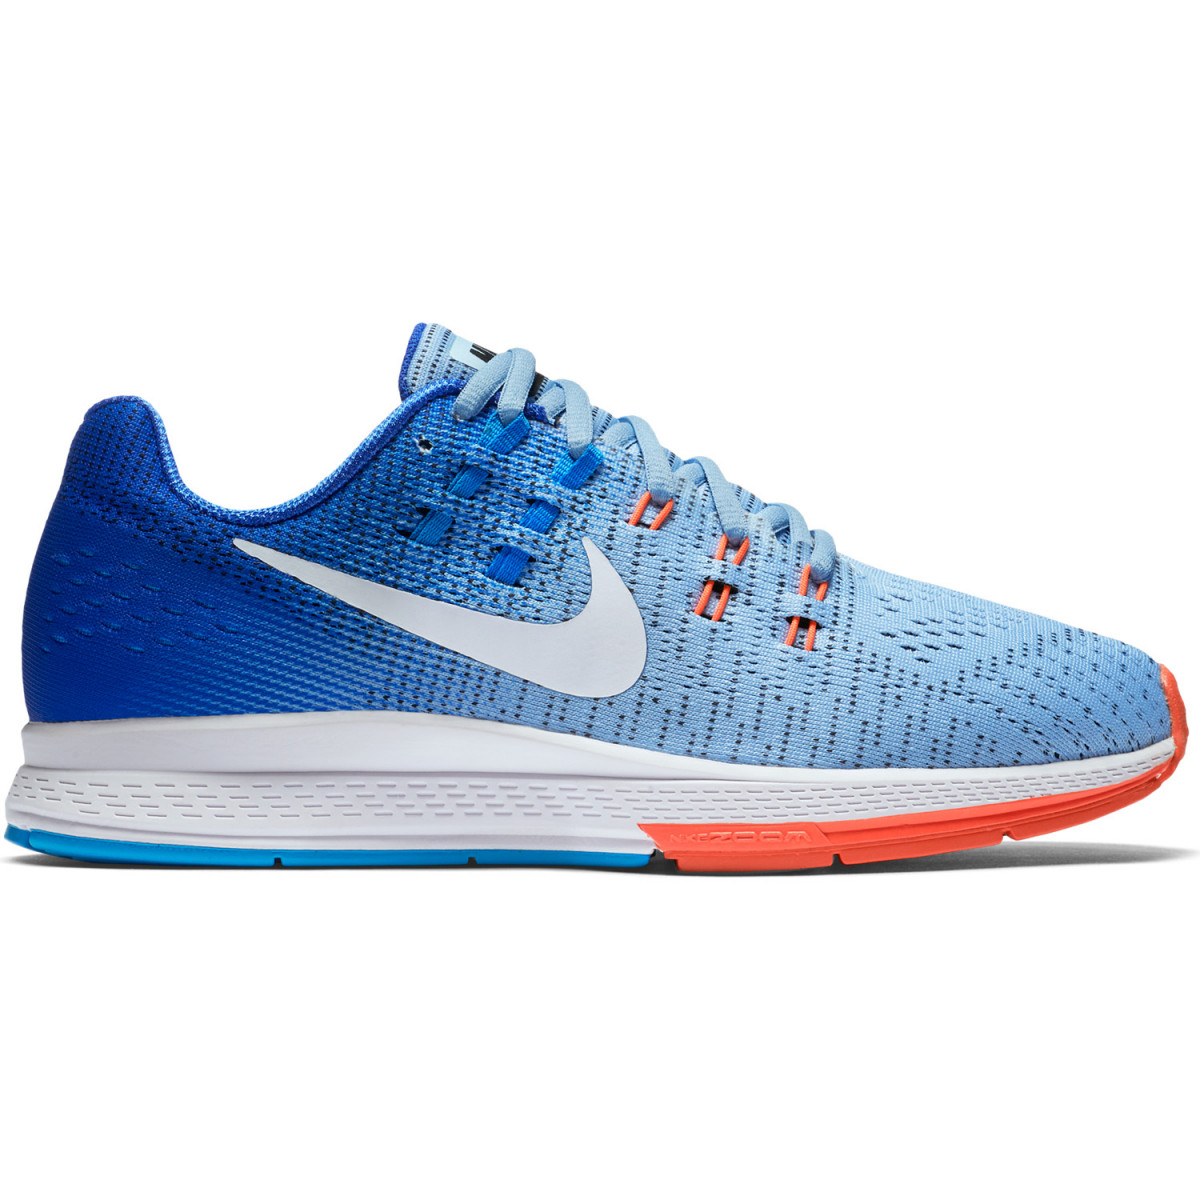 65b6803f0b30c Zapatillas Nike Wmns Air Zoom Structure 19